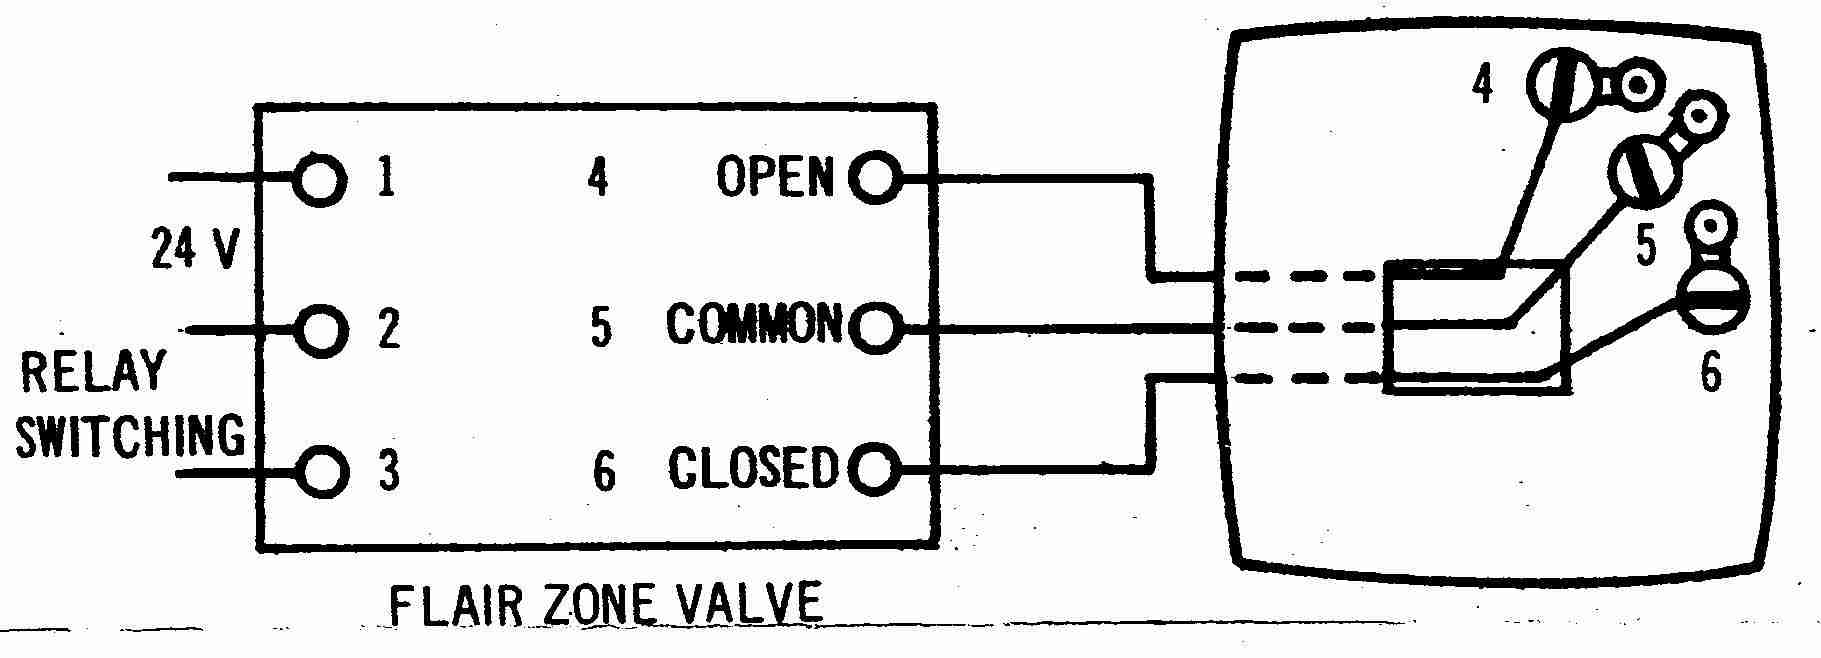 Room Thermostat Wiring Diagrams For Hvac Systems Mr Heater Diagram Flair 3 Wire Controlling A Zone Valve